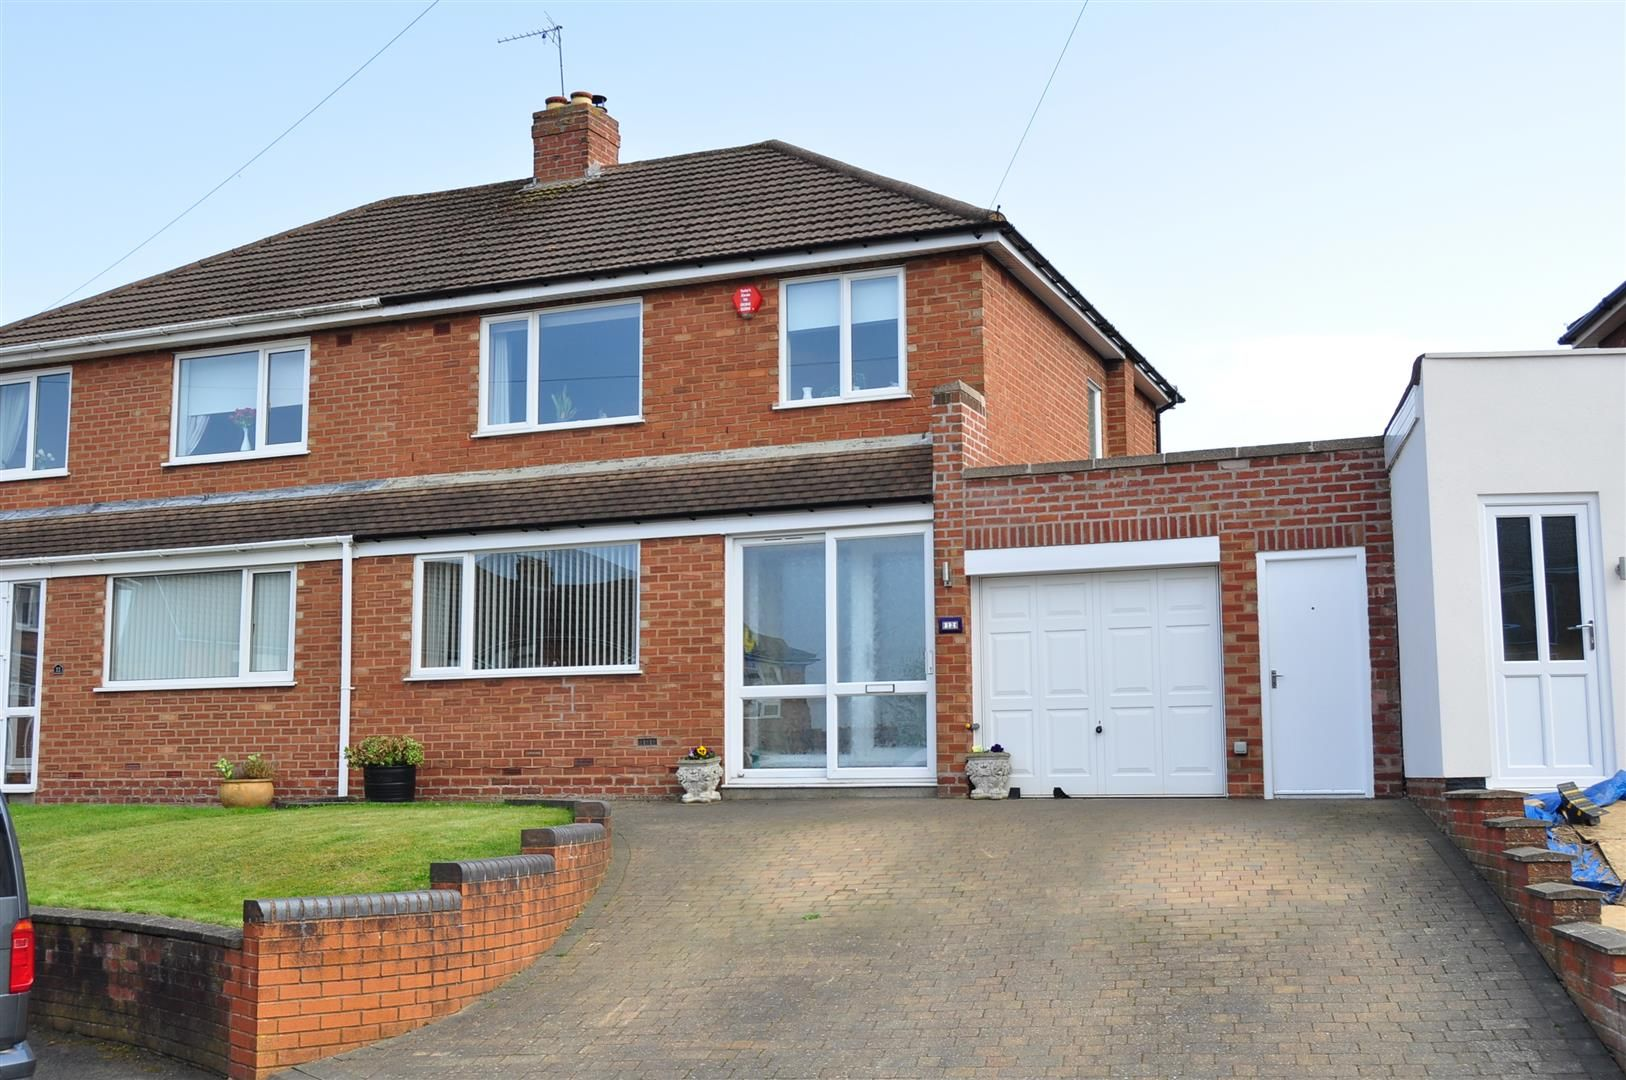 3 bed semi-detached for sale  - Property Image 23